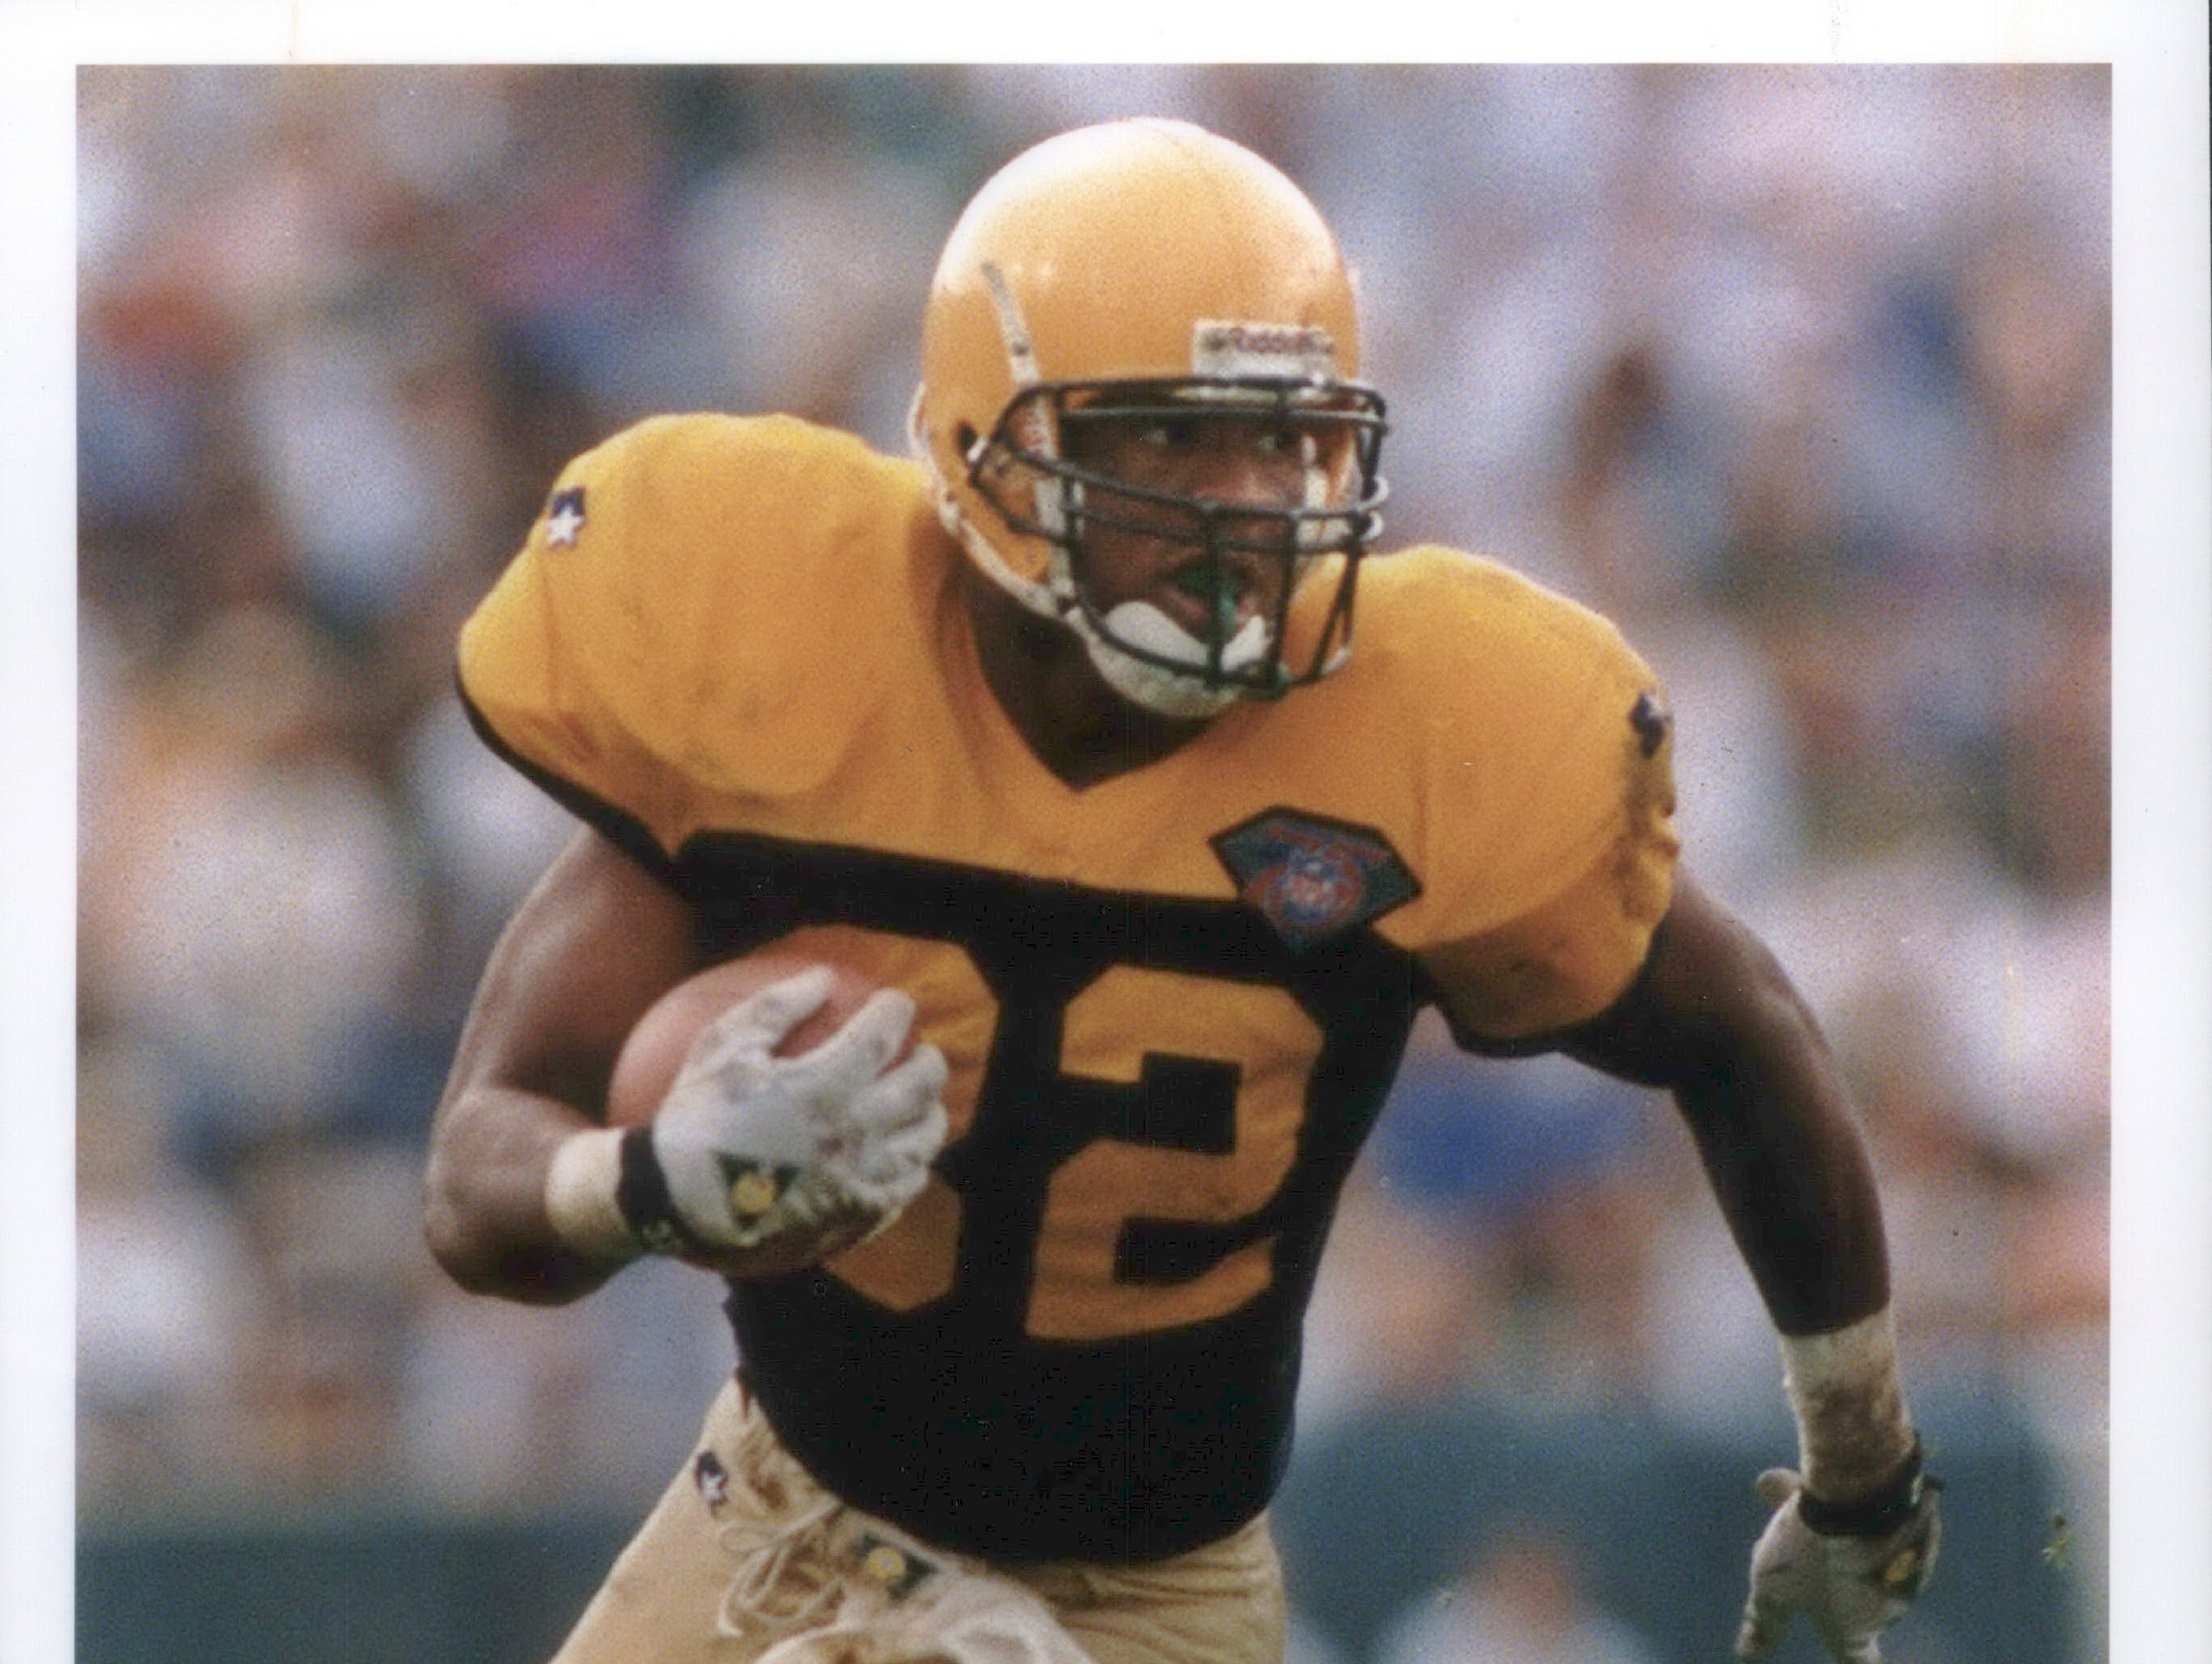 Running back Reggie Cobb carried the ball 12 times and rushed for 46 yards against Tampa Bay.Cobb agreed to a   two-year contract worth $2.2 million with the Green Bay Packers before the 1994 season.